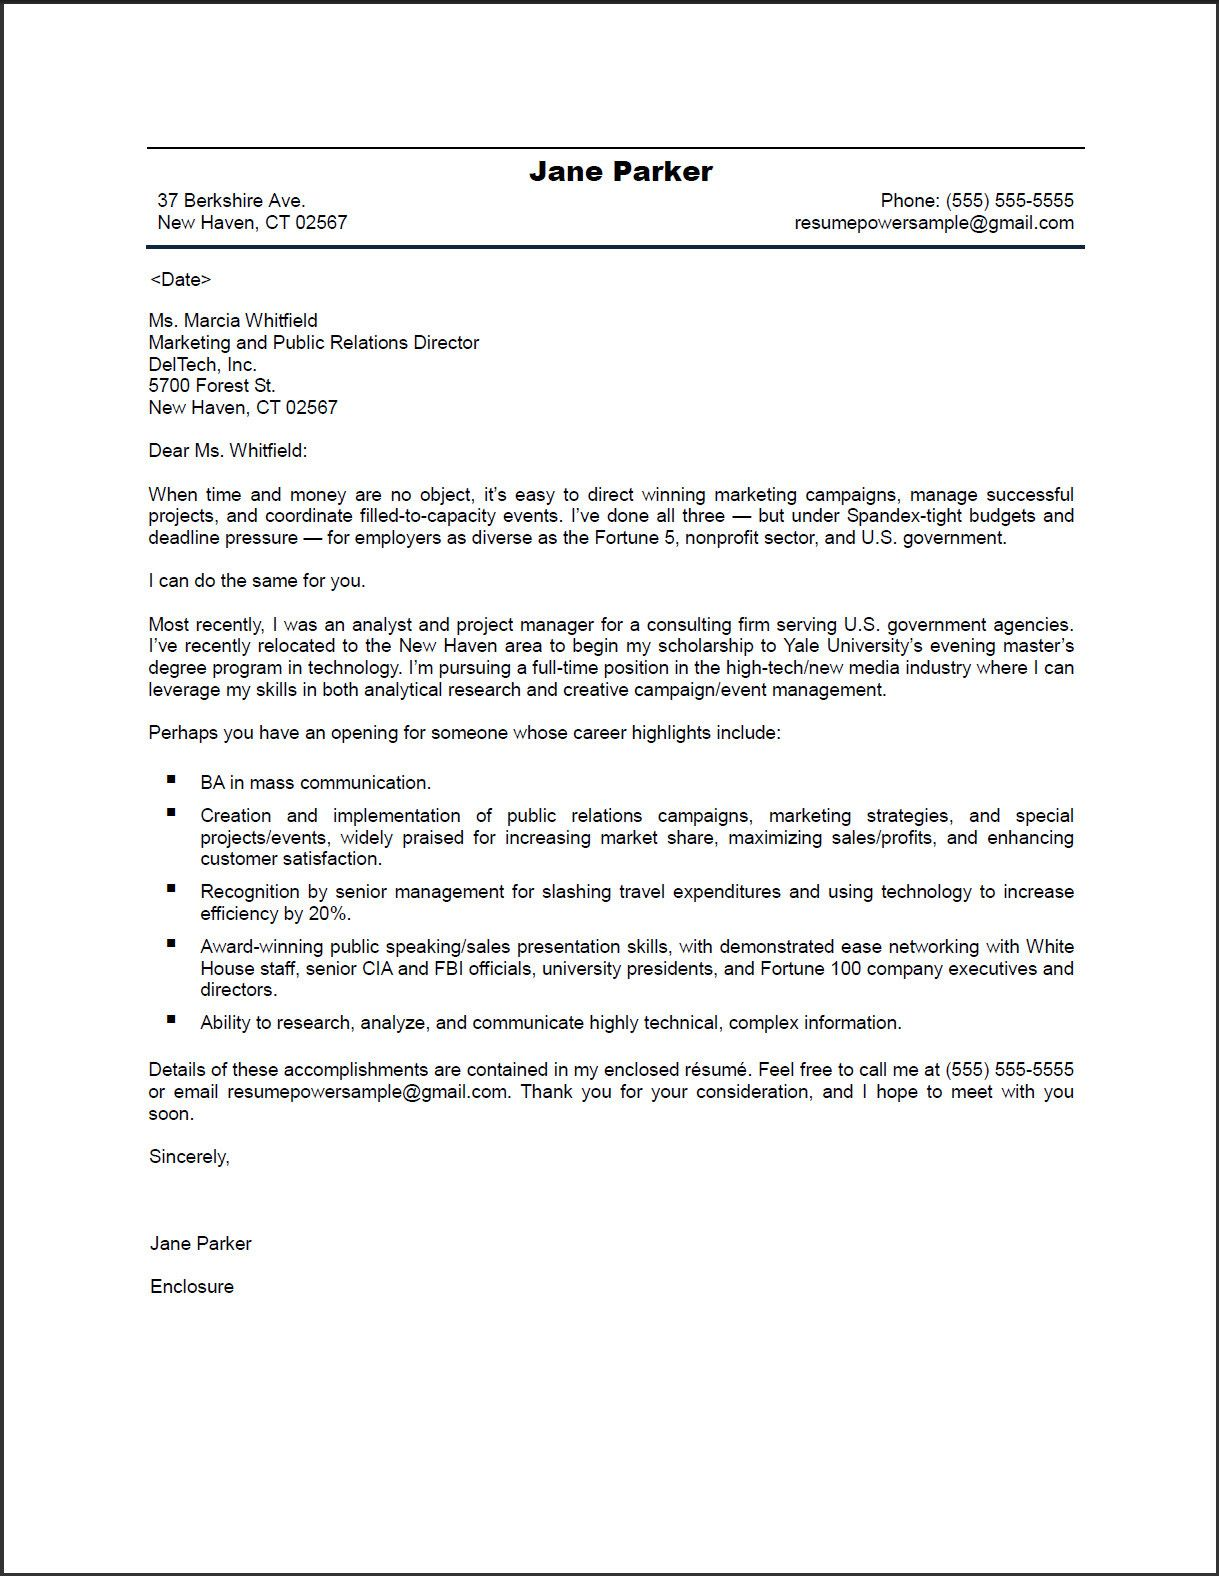 PR Marketing Cover Letter | ResumePower | inspirational ...